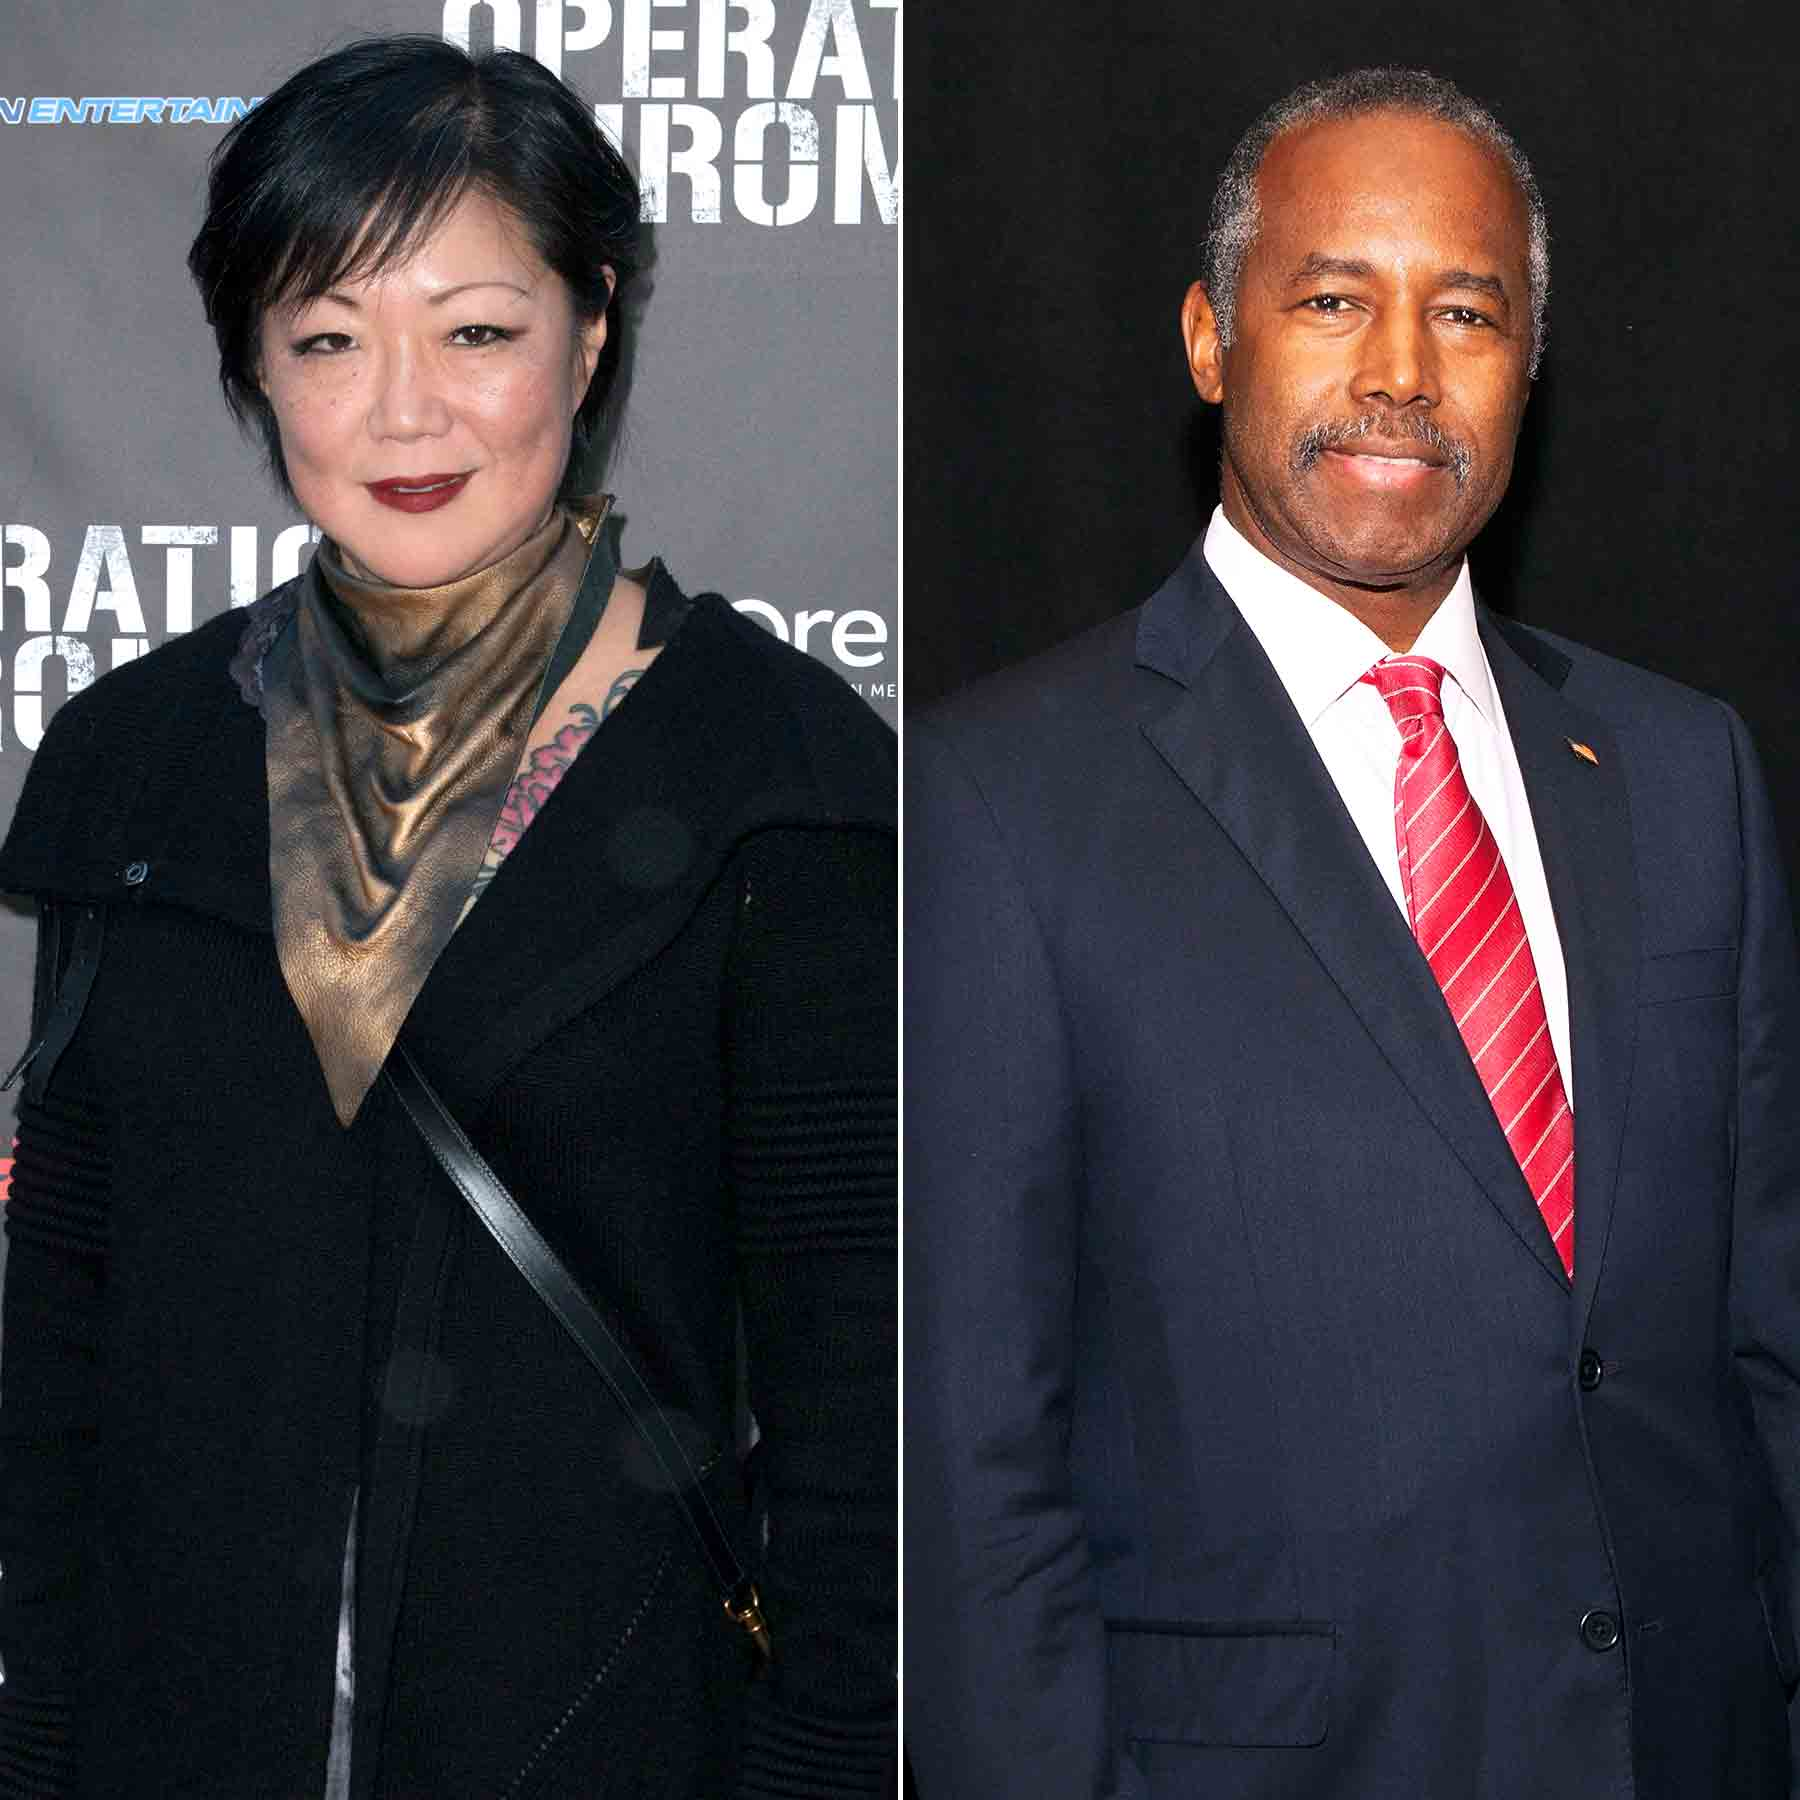 Margaret Cho will play Ben Carson on SNL